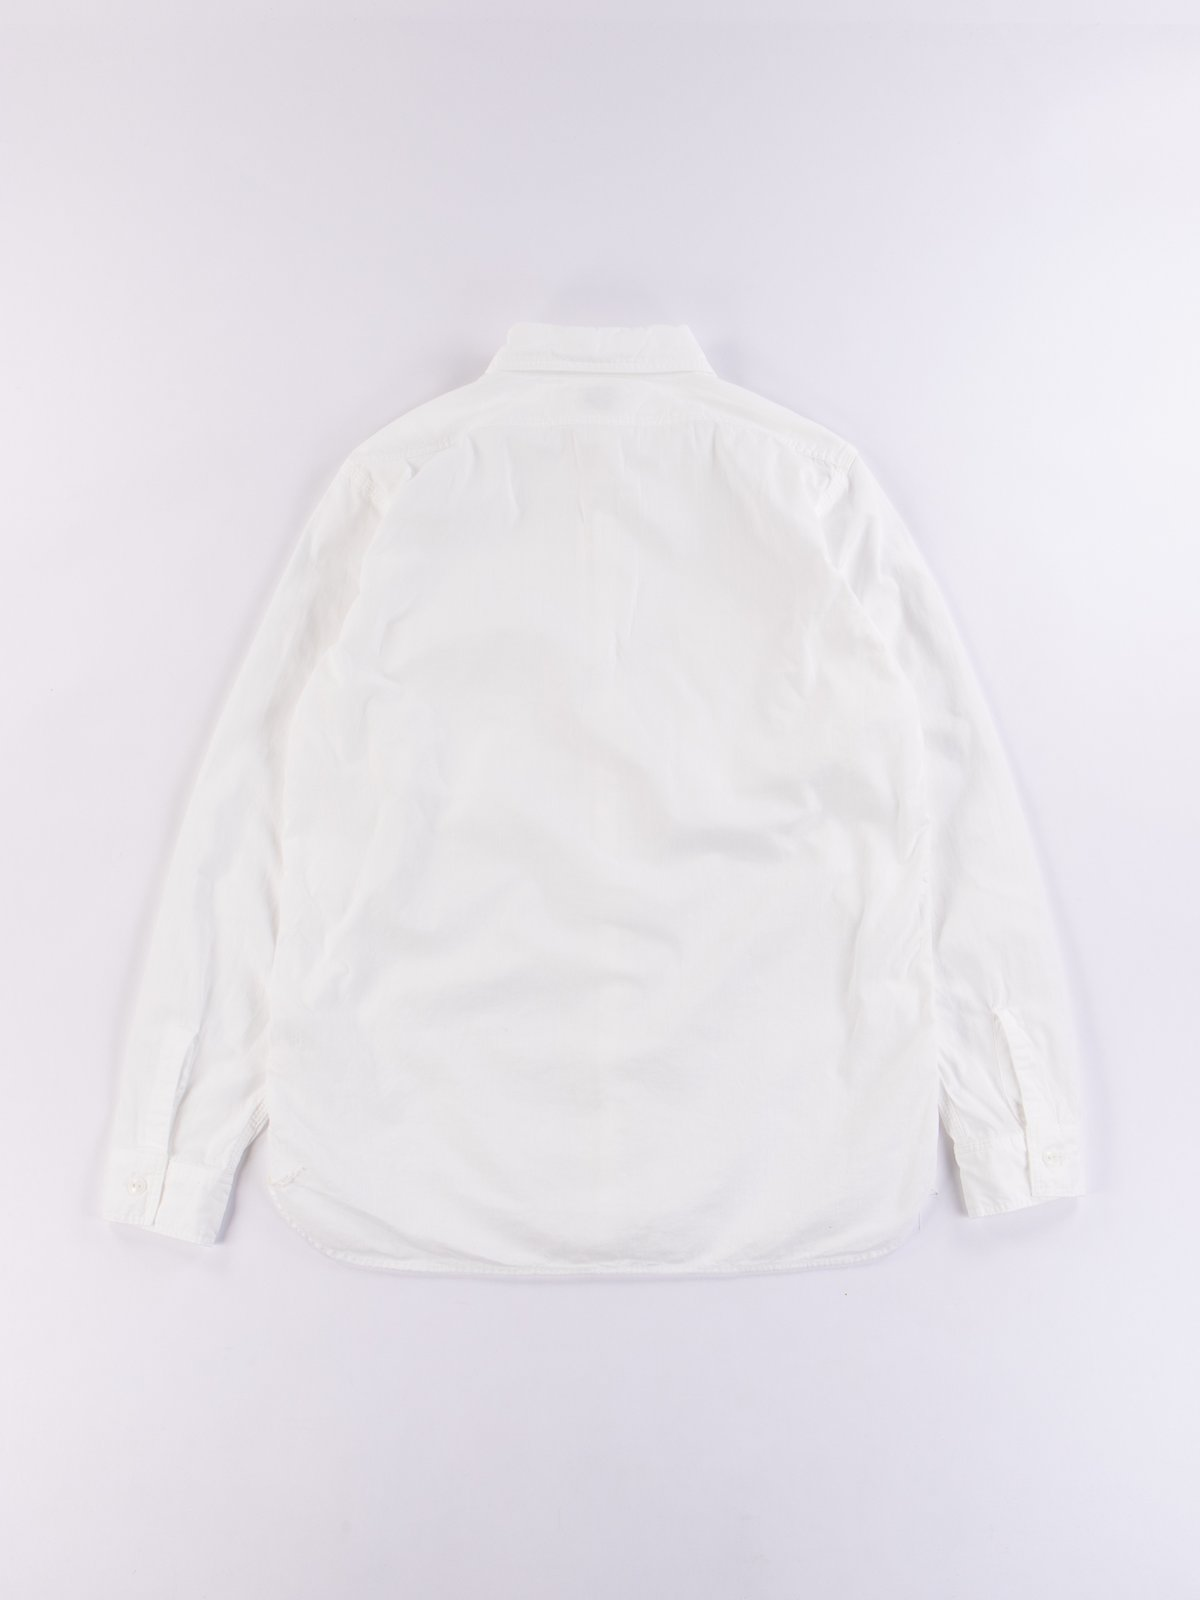 White Chambray Work Shirt - Image 4